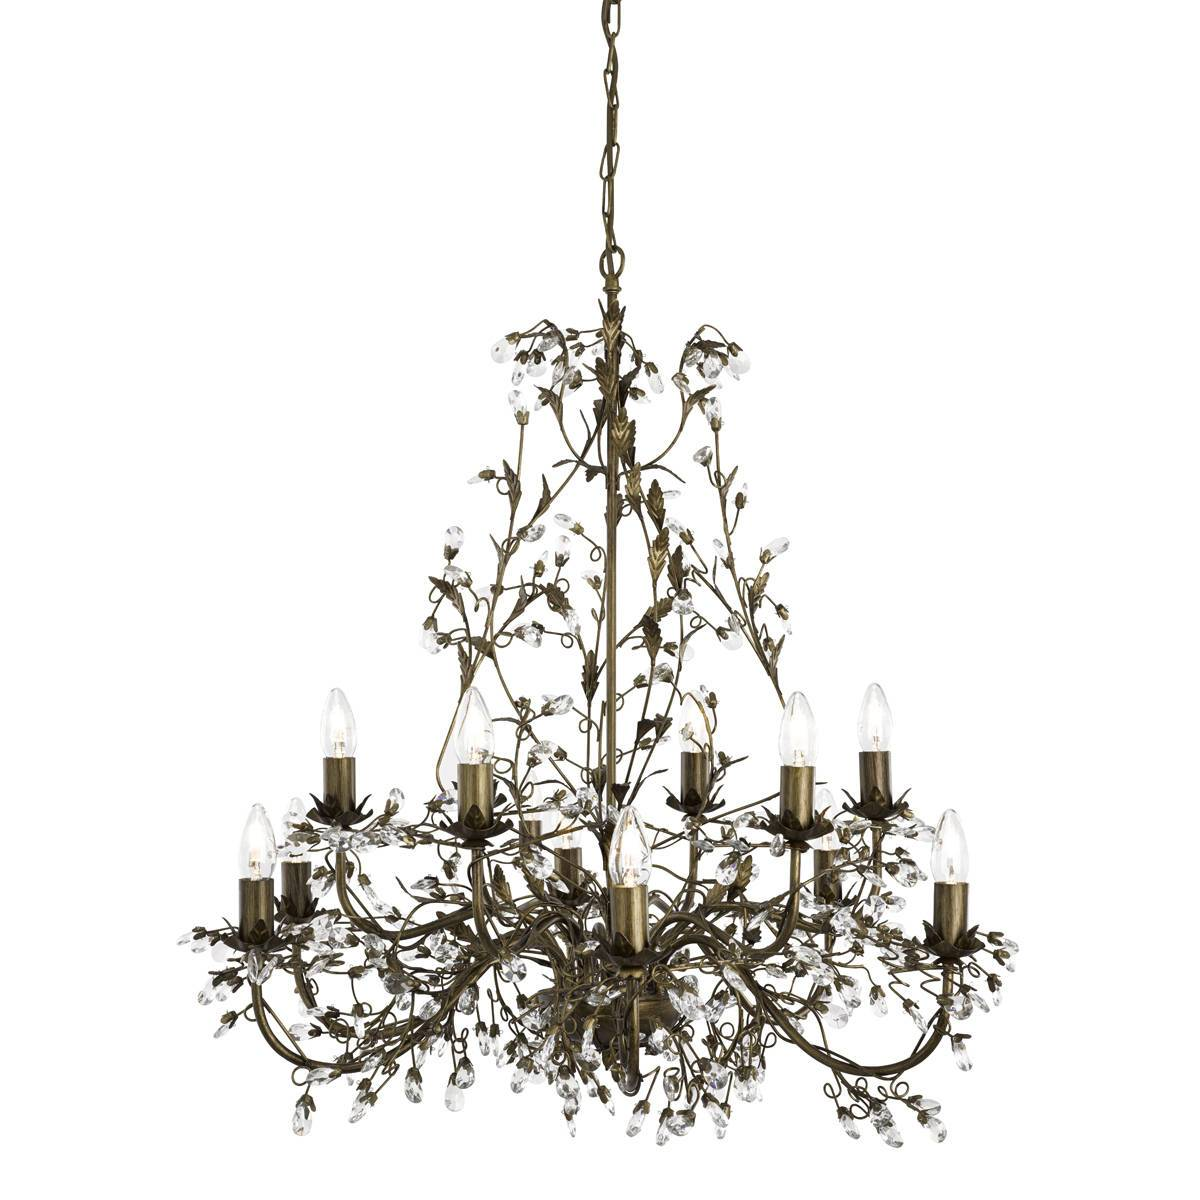 12 Light Multi Arm Ceiling Pendant Brown Gold With Crystals Floral Leaves Design, E14